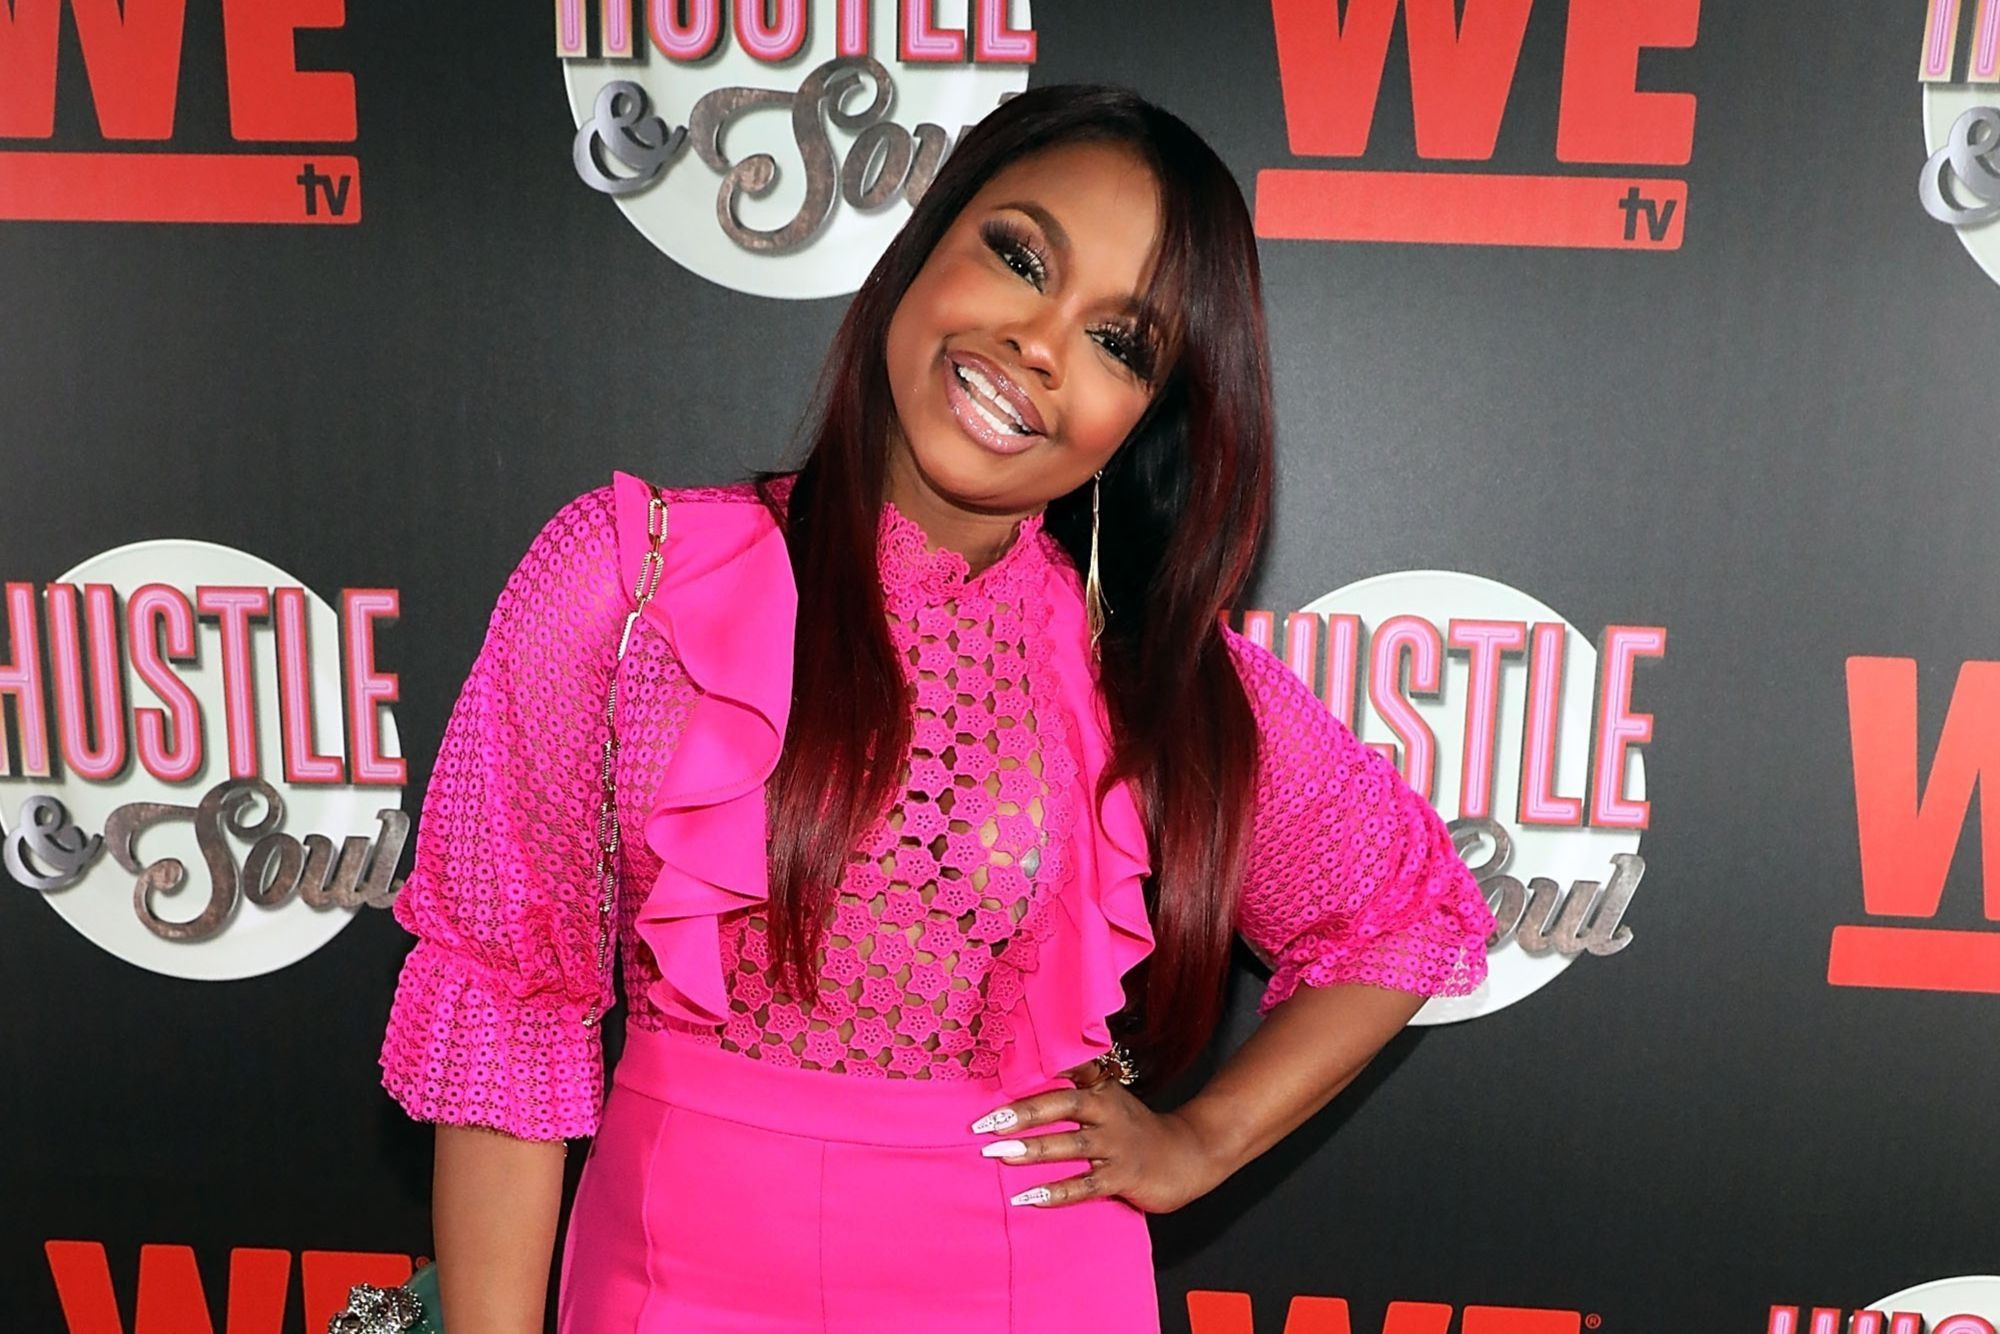 Phaedra Parks Invites People To Book Her Private Jet - Porsha Williams Is In!